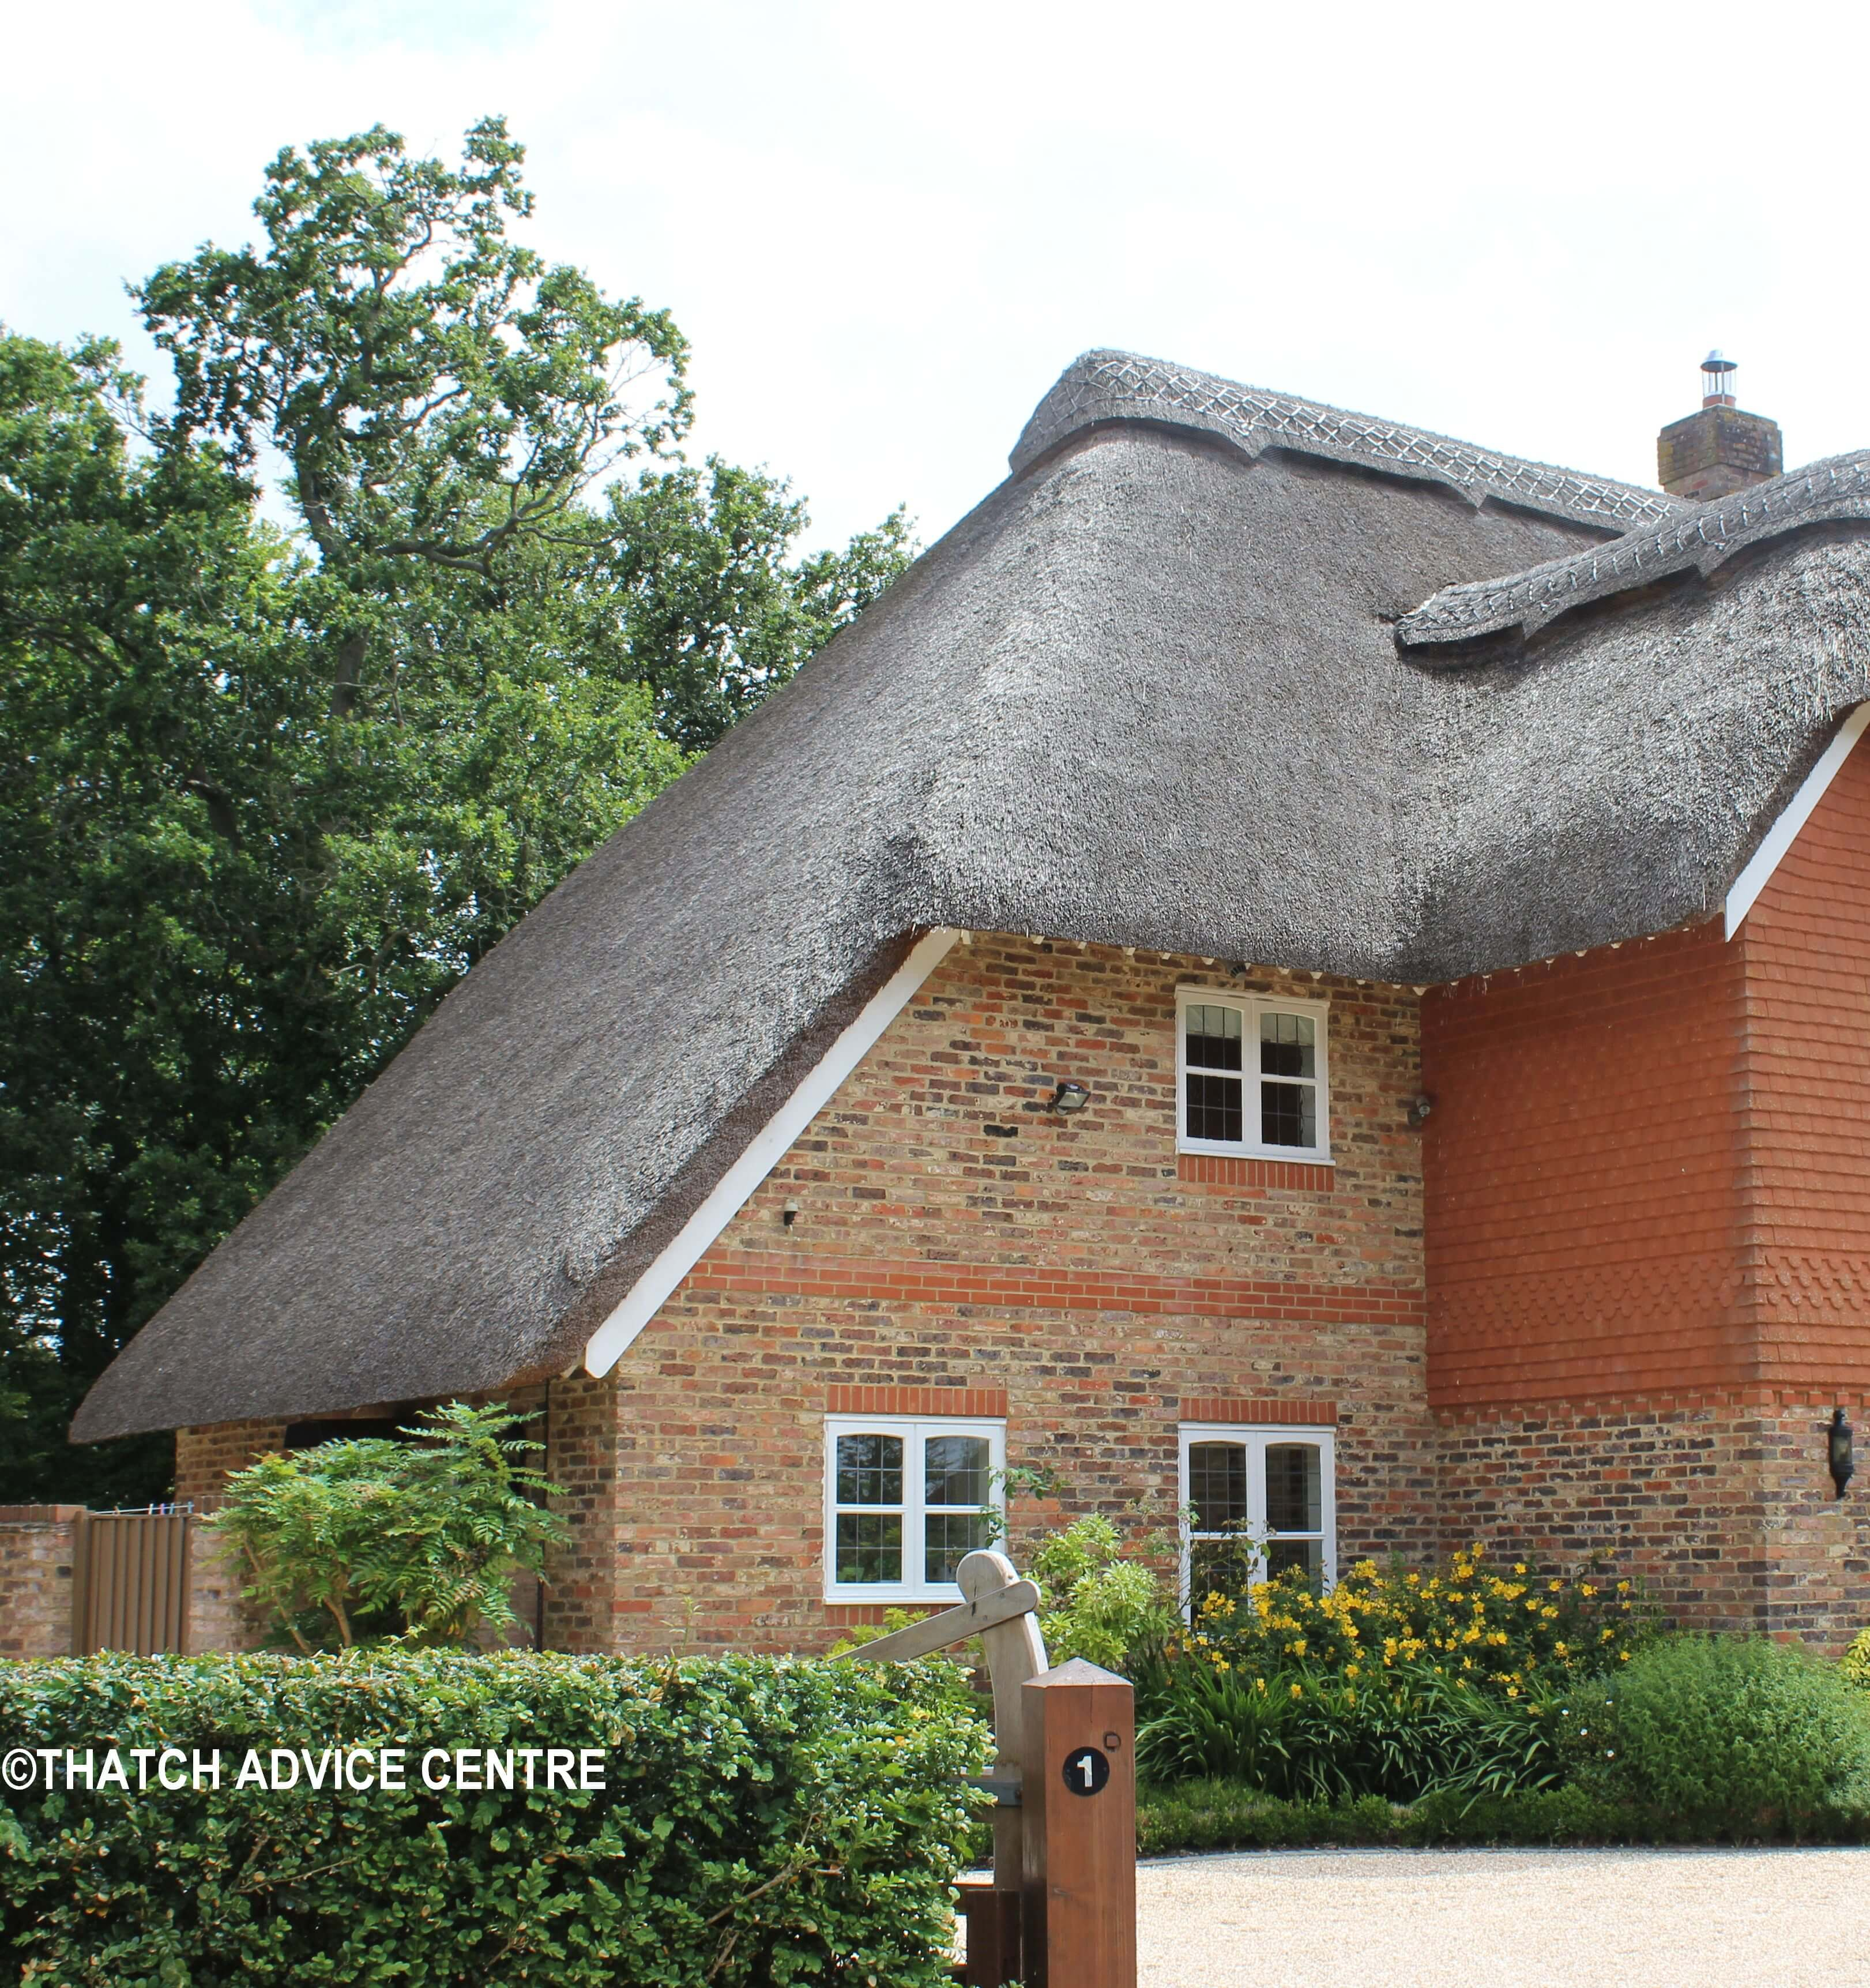 Catslides On A Thatched Roof Thatch Advice Centre